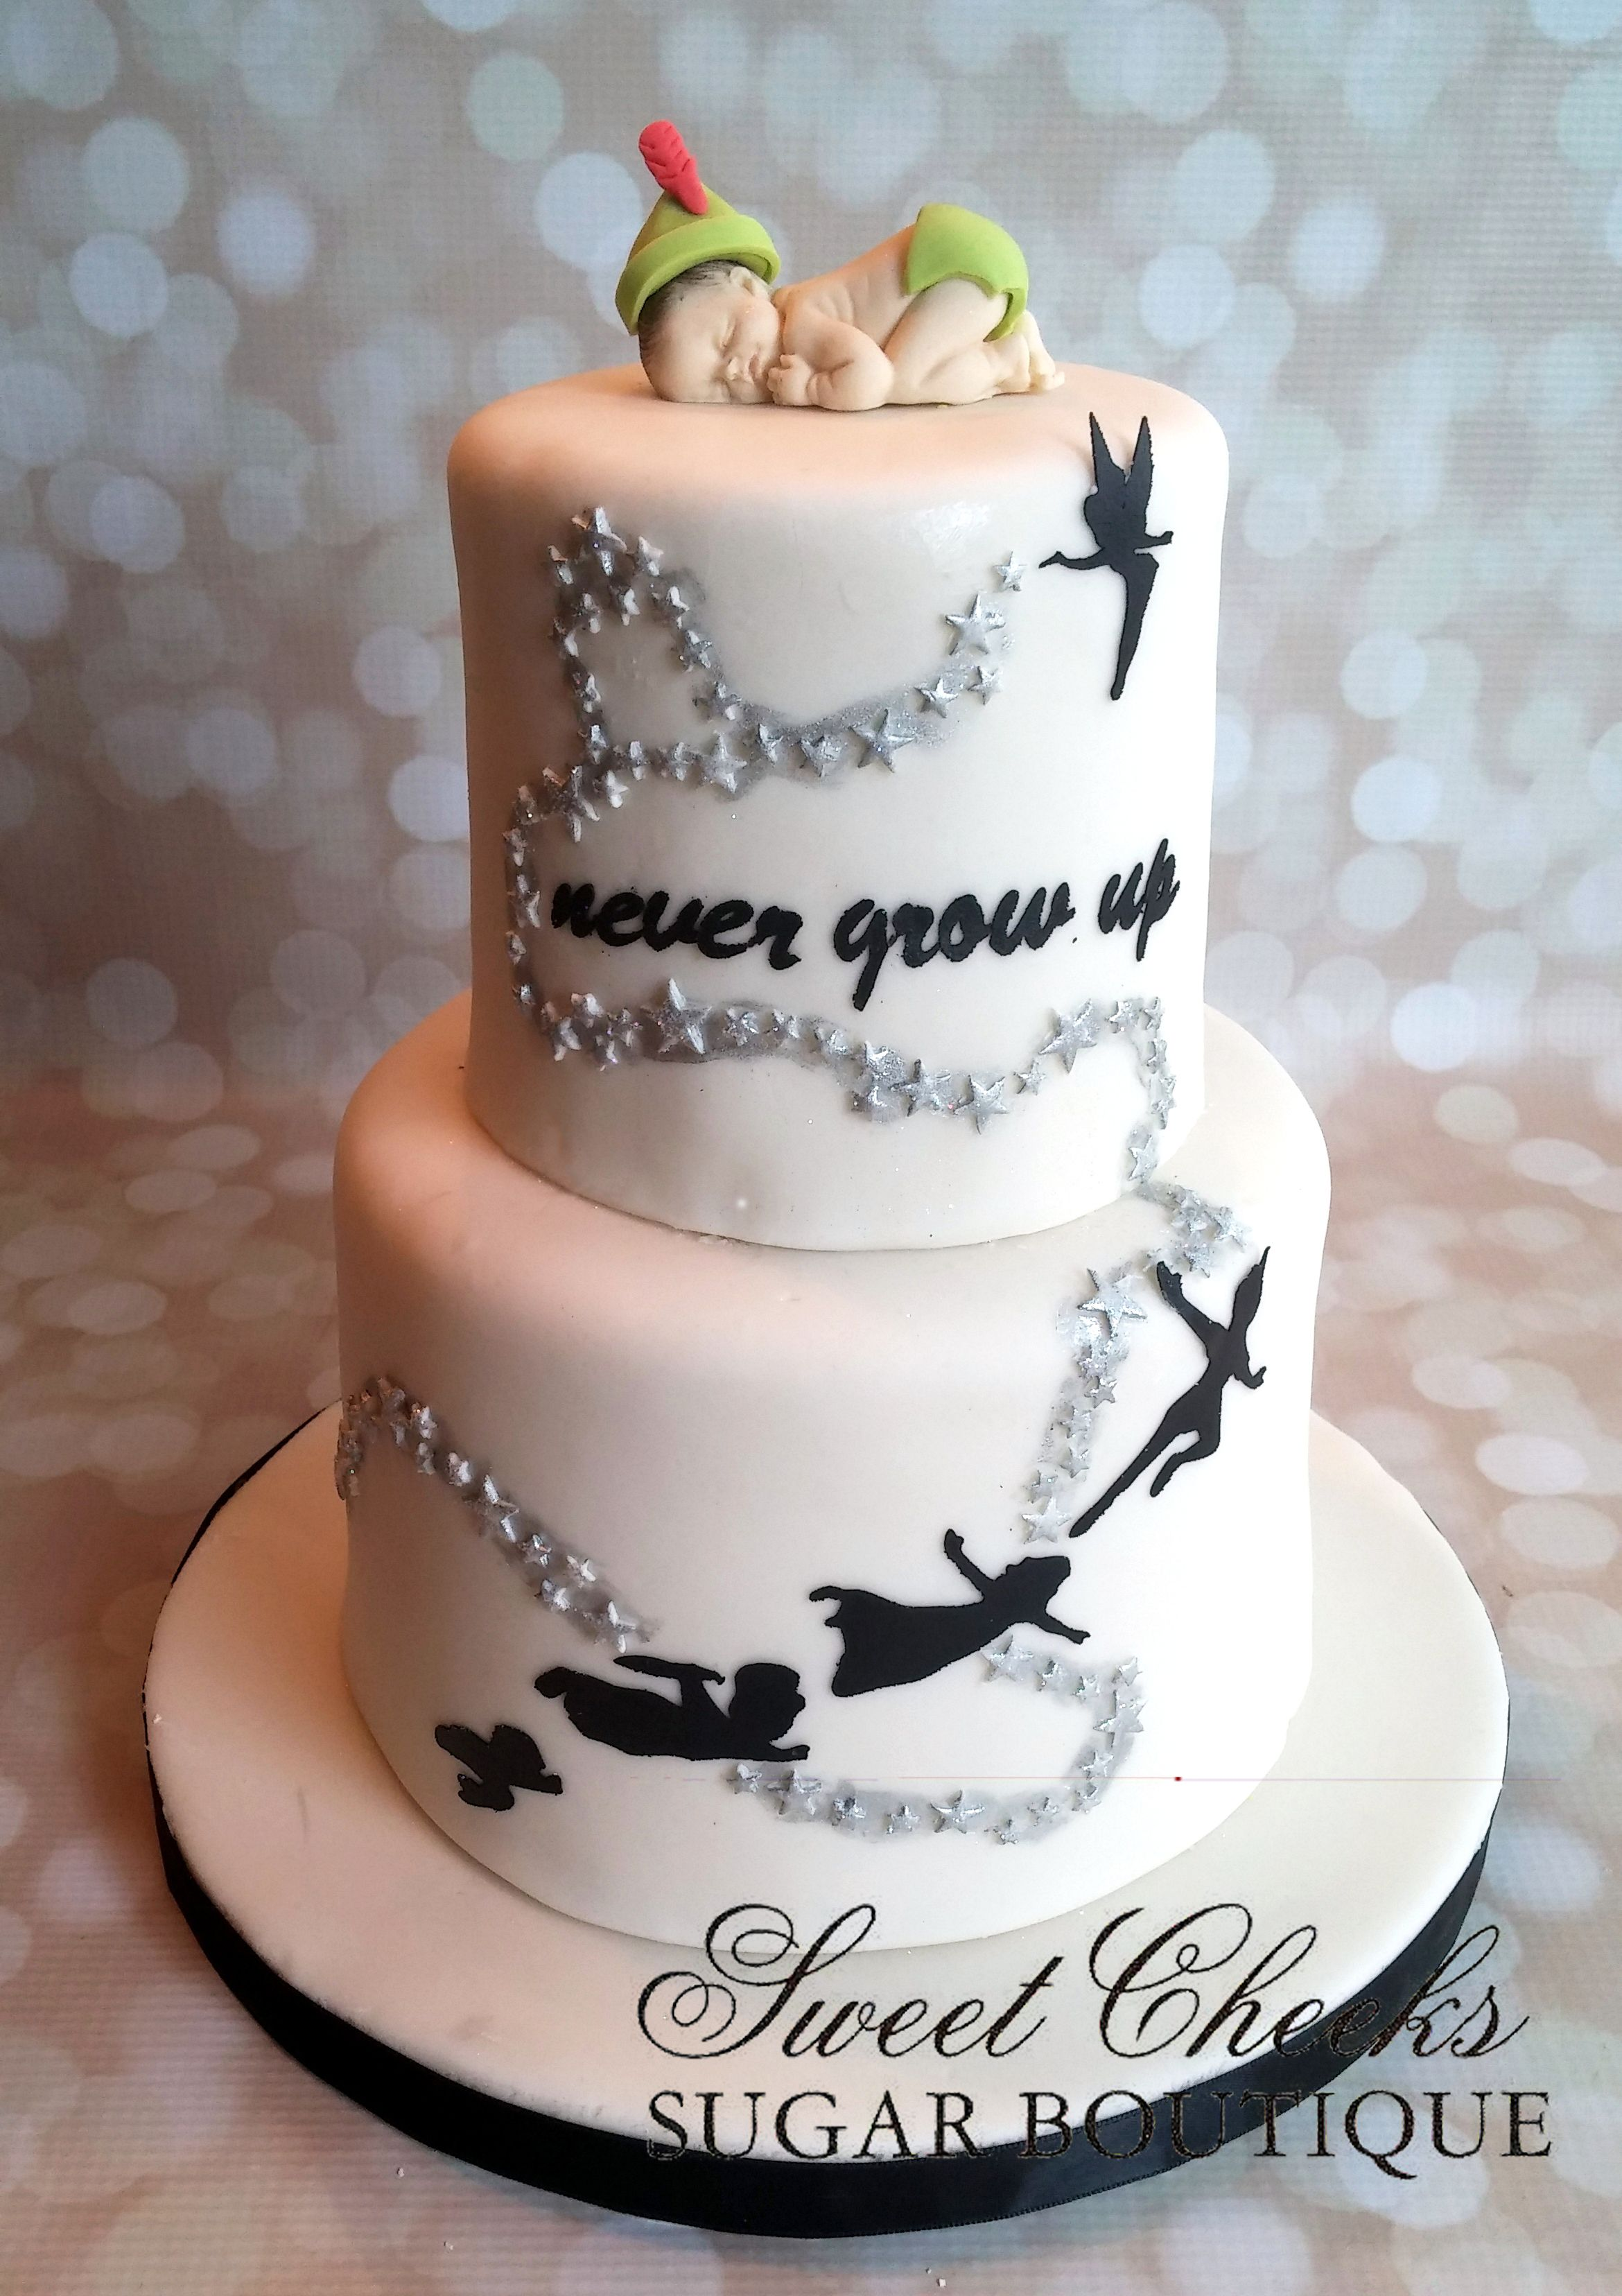 A Peter Pan themed baby shower cake